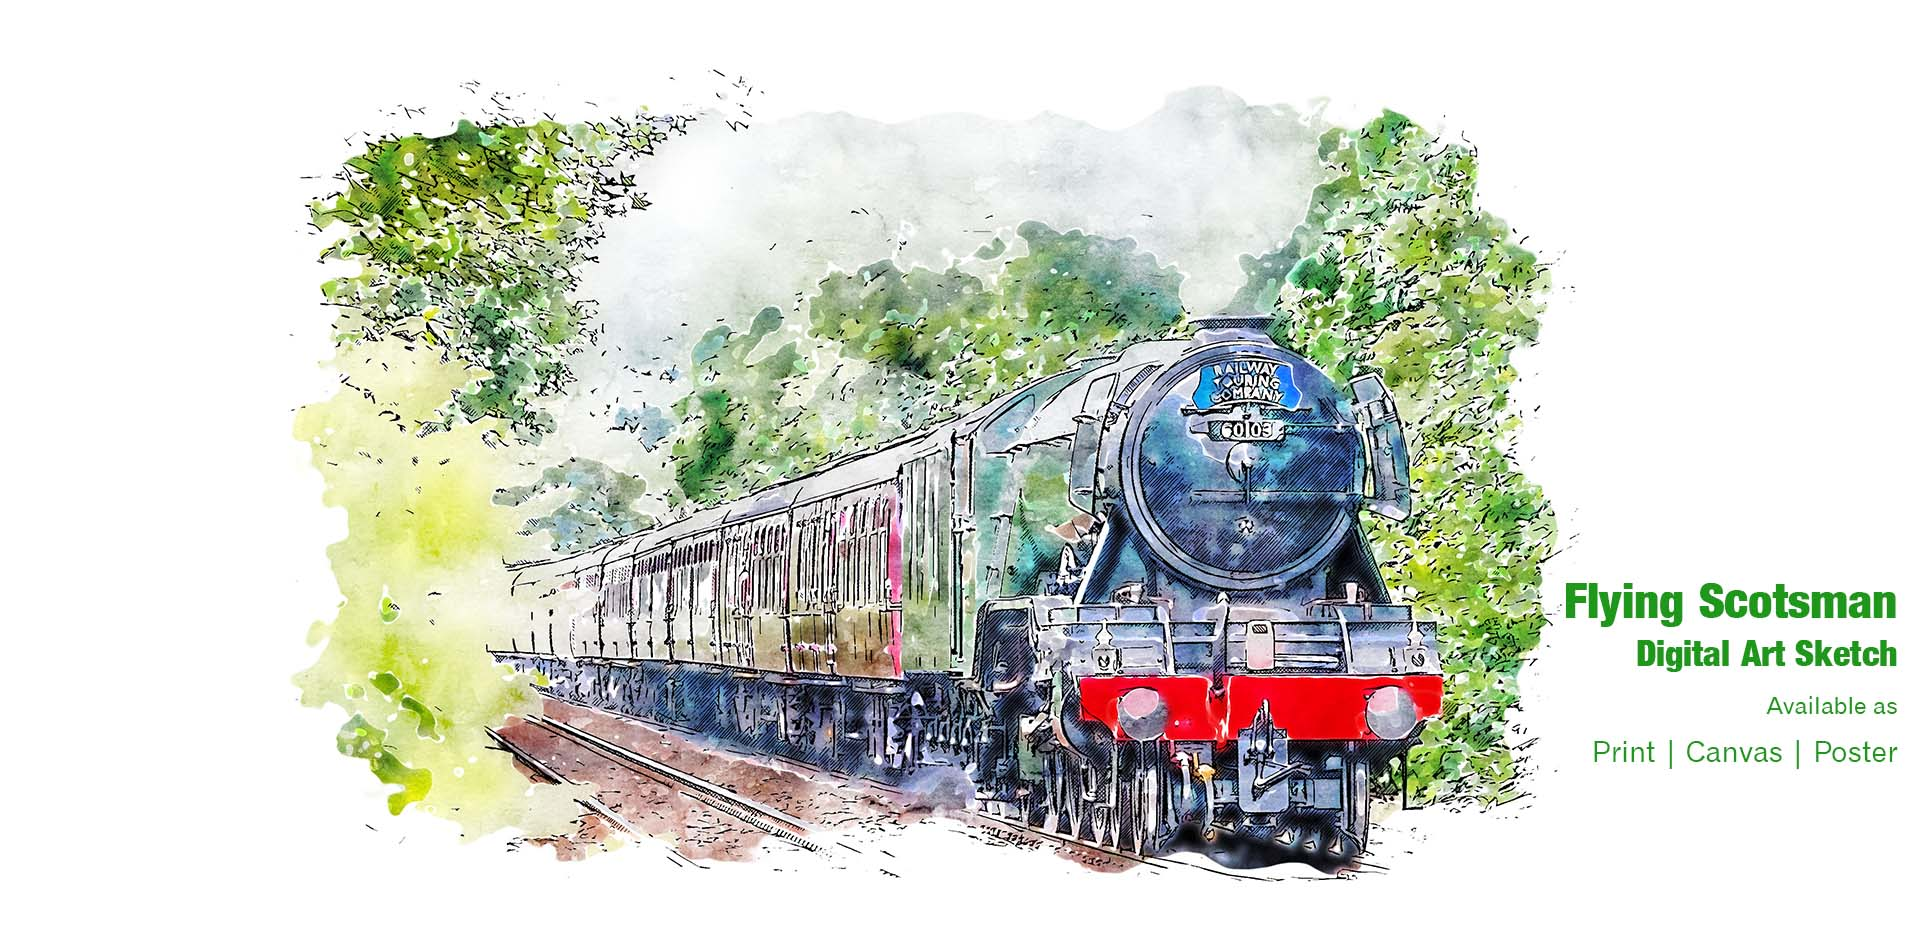 Flying Scotsman Ponteland Print & Publishing